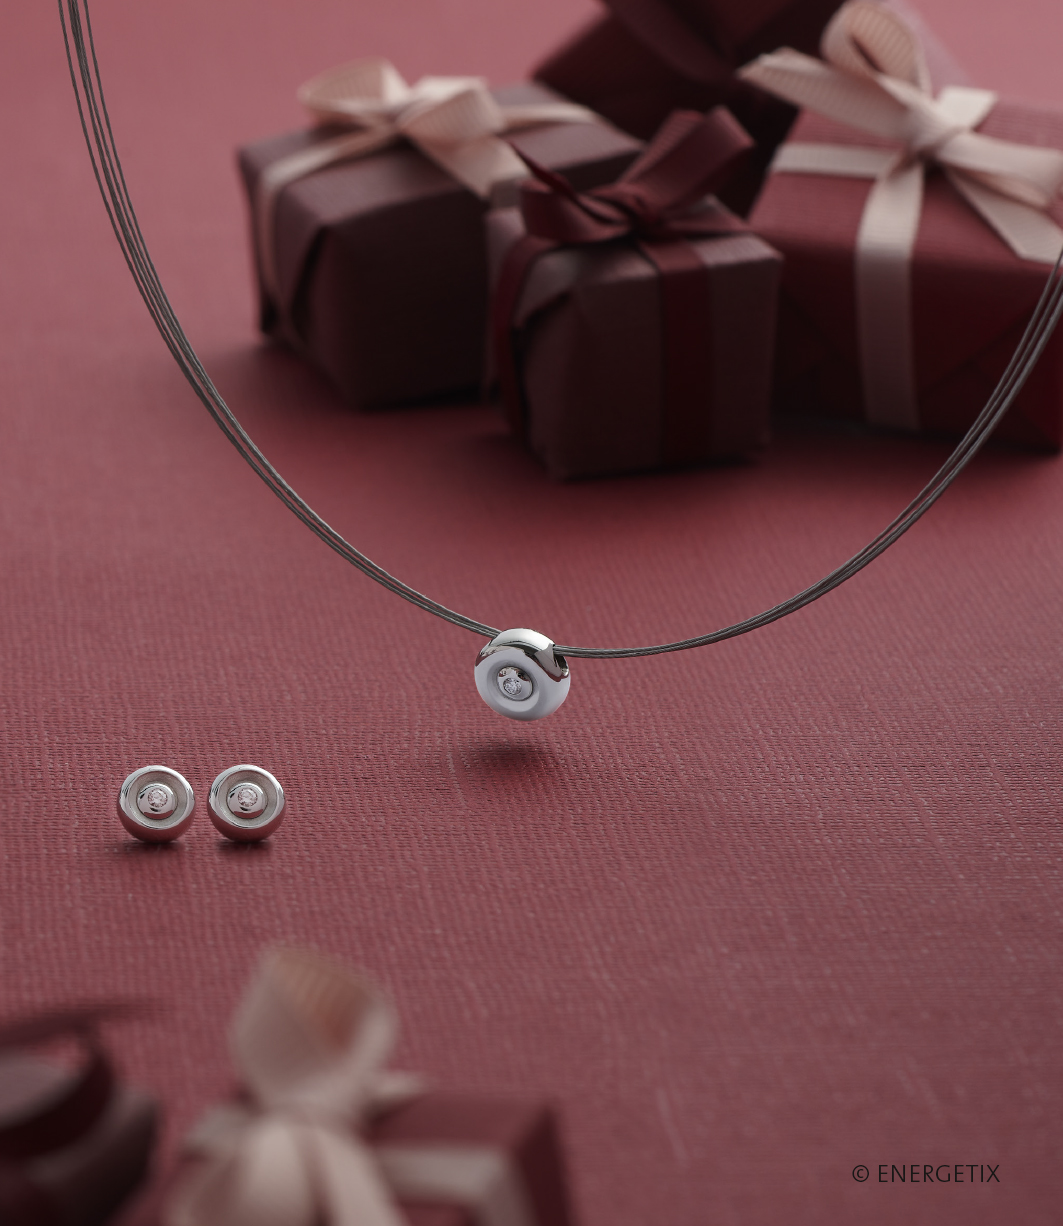 Round, stainless steel ear studs with certified diamond centres, next to a round stainless steel pendant with diamond centre, handing from a steel necklace. These are on a burgundy table cloth with small gift boxes in the background